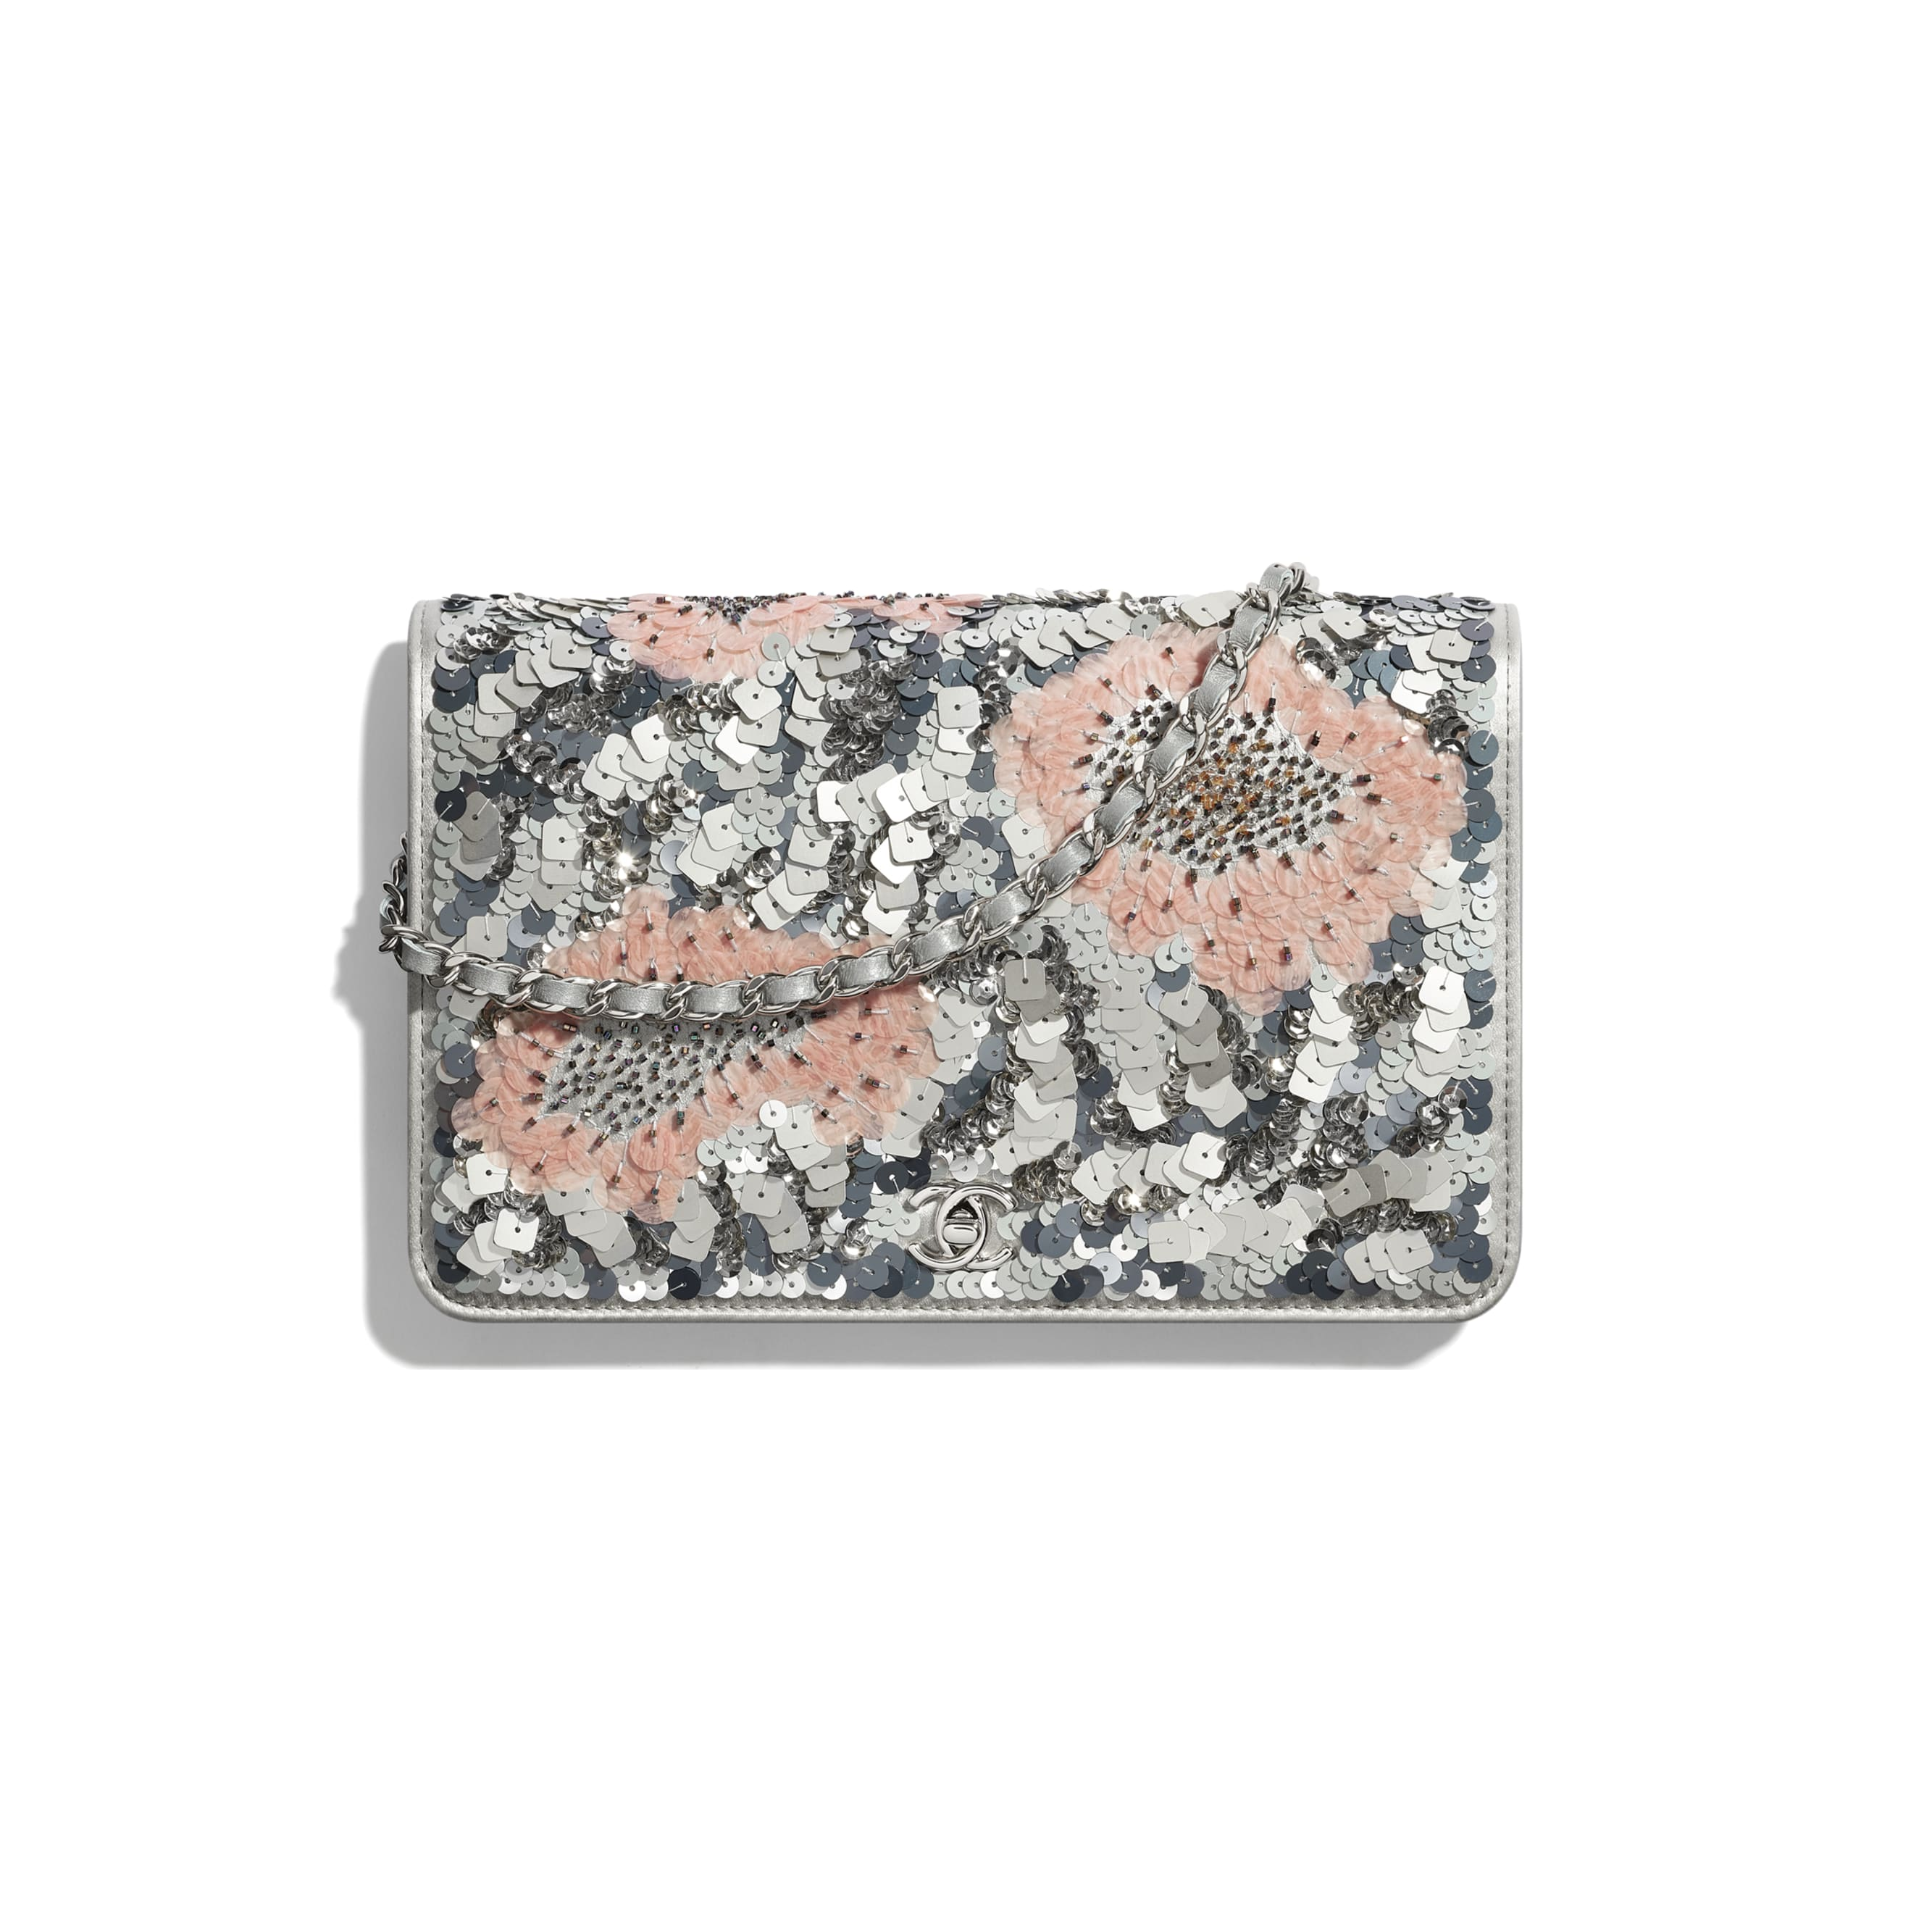 Wallet On Chain - Gray, Silver & Pink - Sequins, Glass Pearls & Silver-Tone Metal - CHANEL - Default view - see standard sized version